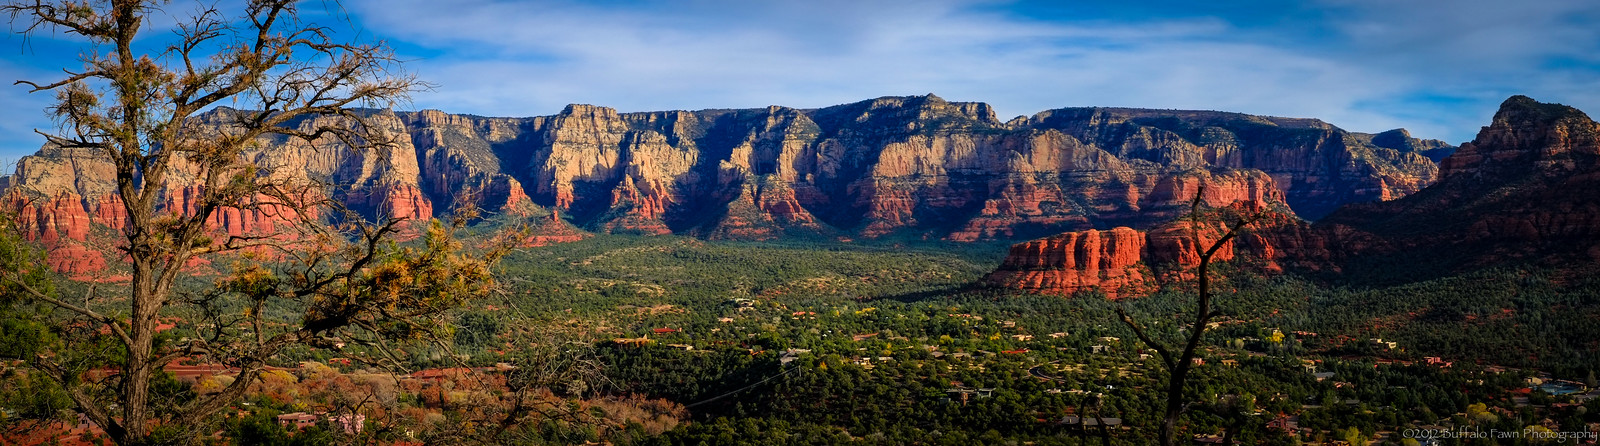 Sedona Sweep